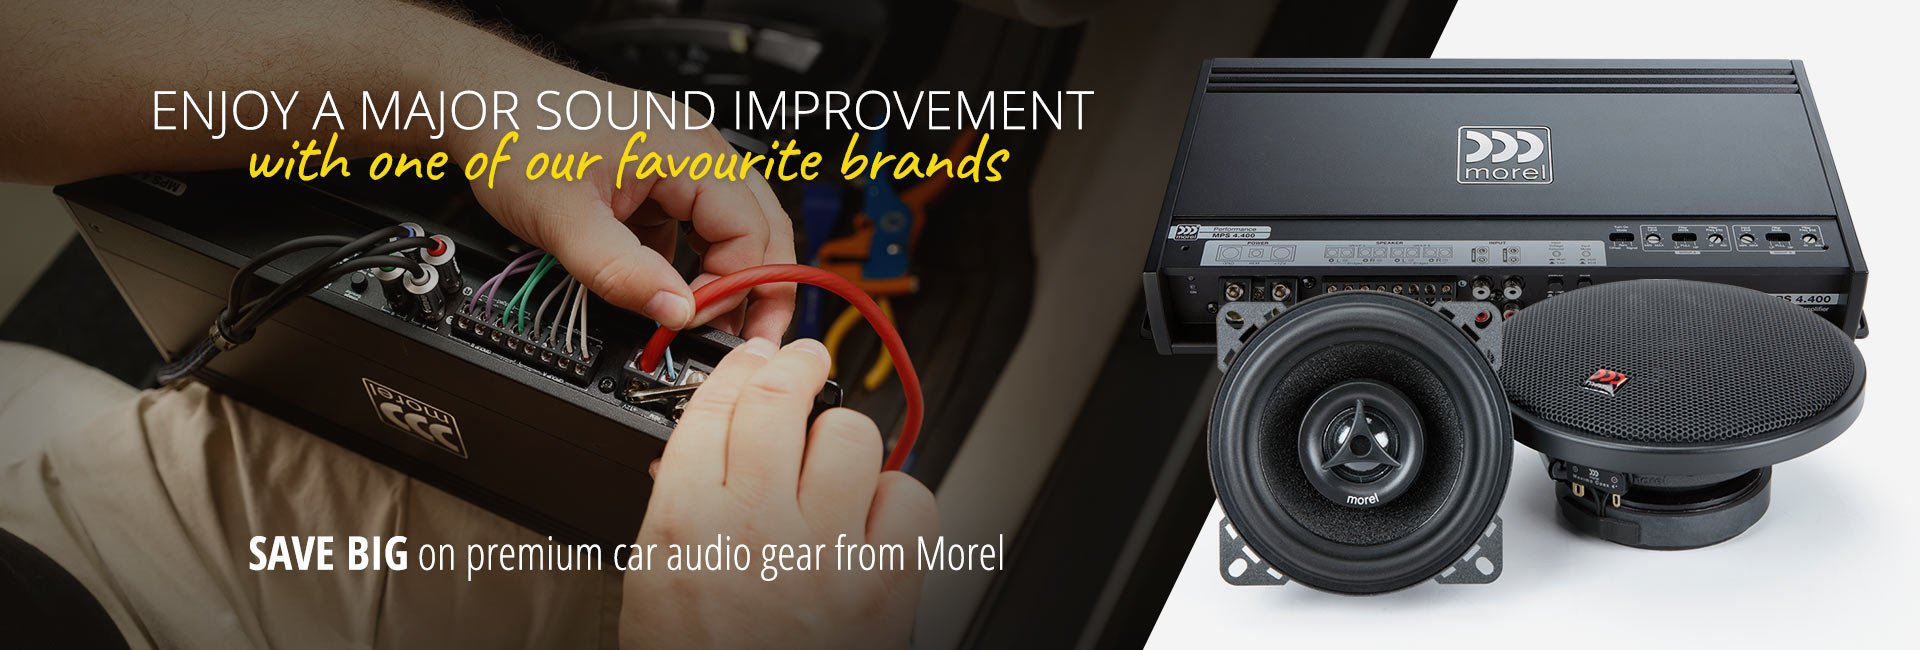 Save big on premium car audio gear from Morel